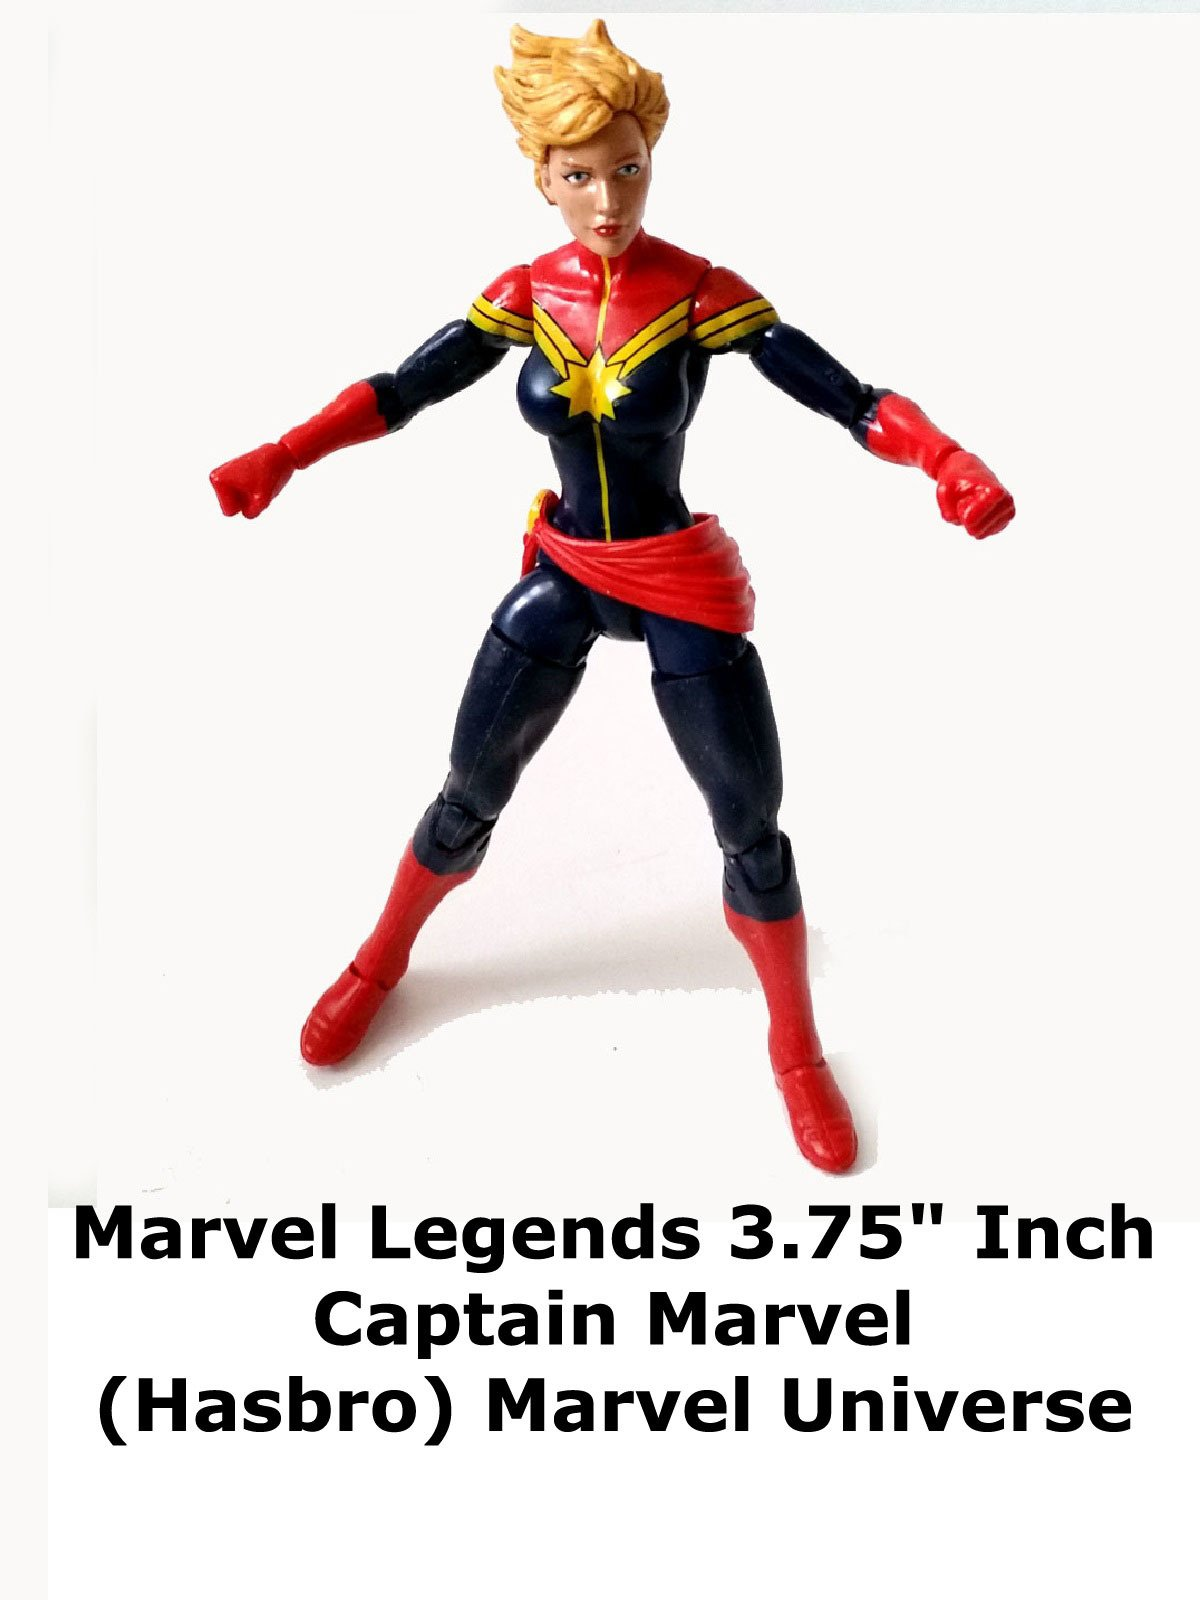 "Review: Marvel Legends 3.75"" Inch Captain Marvel (Hasbro) Marvel Universe"